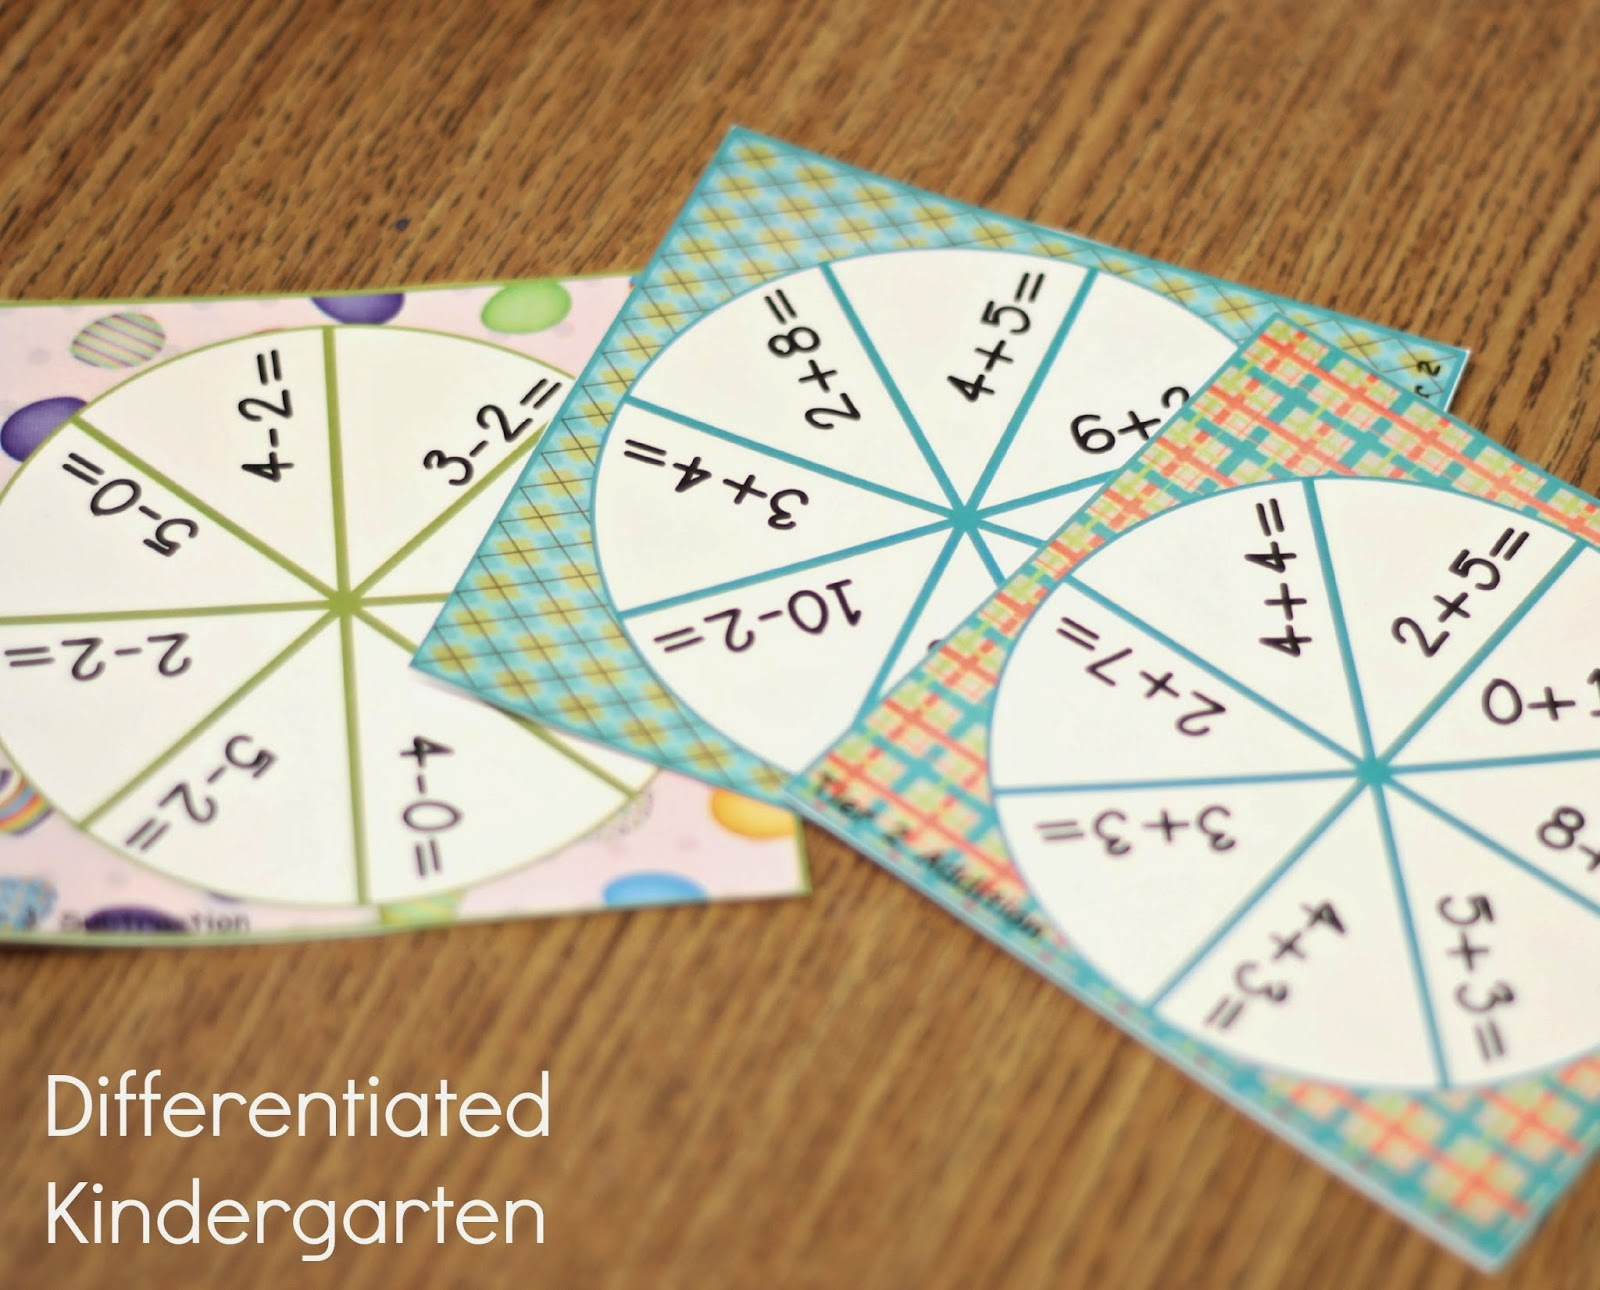 differentiated instruction in kindergarten example